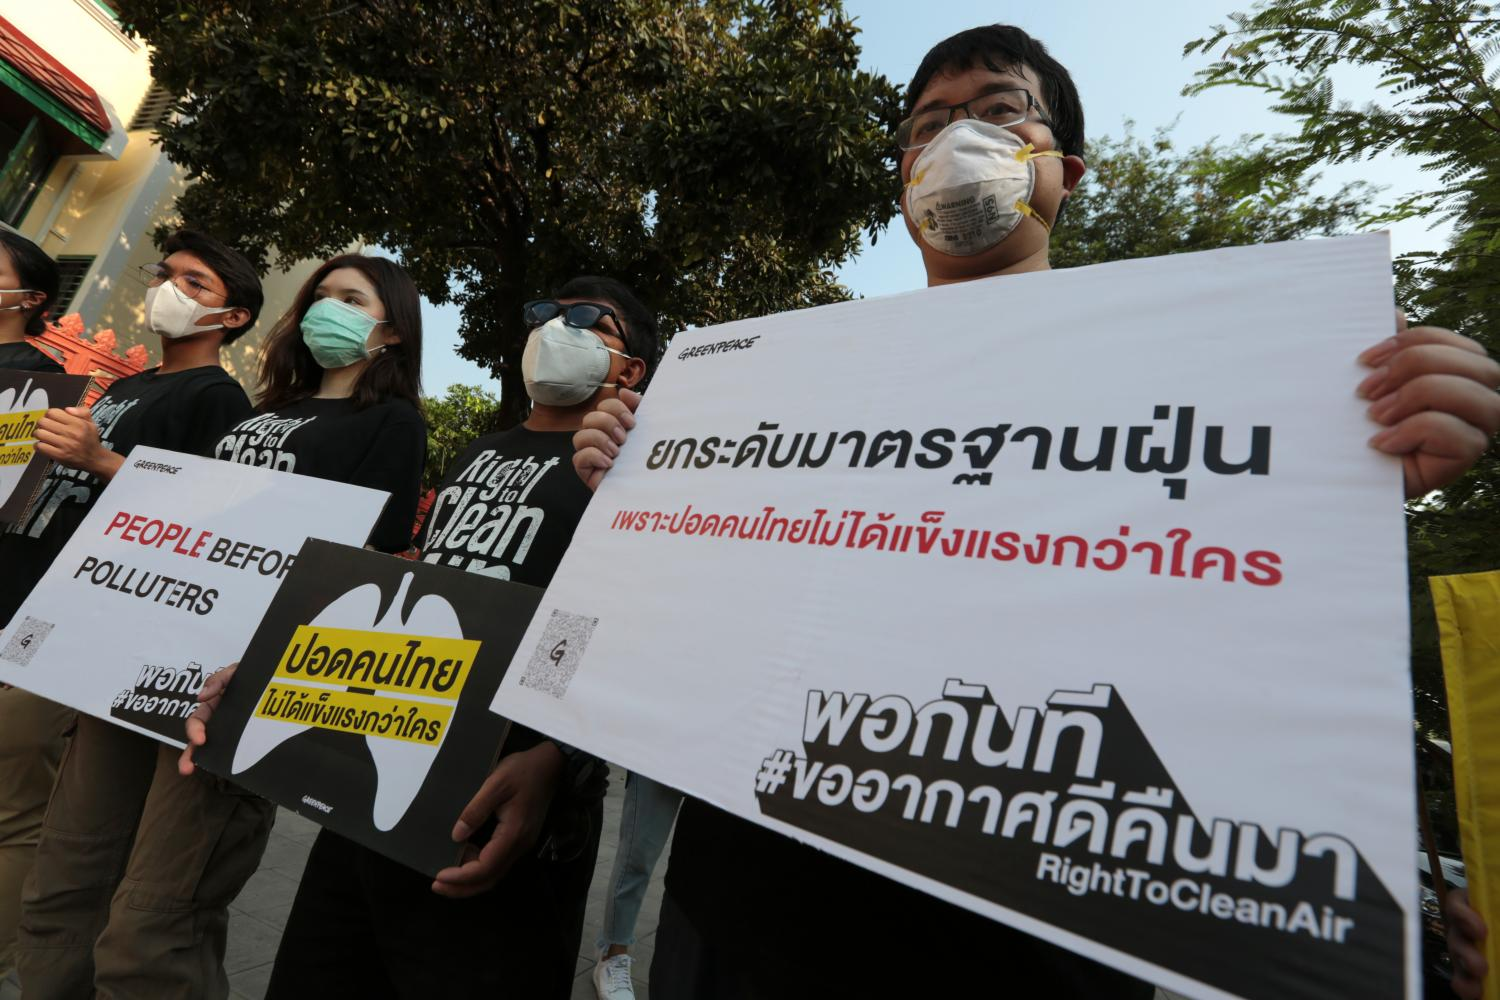 Activists from various organisations including Greenpeace, BioThai and the Foundation for Consumers, gather at the government's centre to accept petitions to call for more efficient measures to combat haze which hits the country at this time of the year. (Photo by Chanat Katanyu)